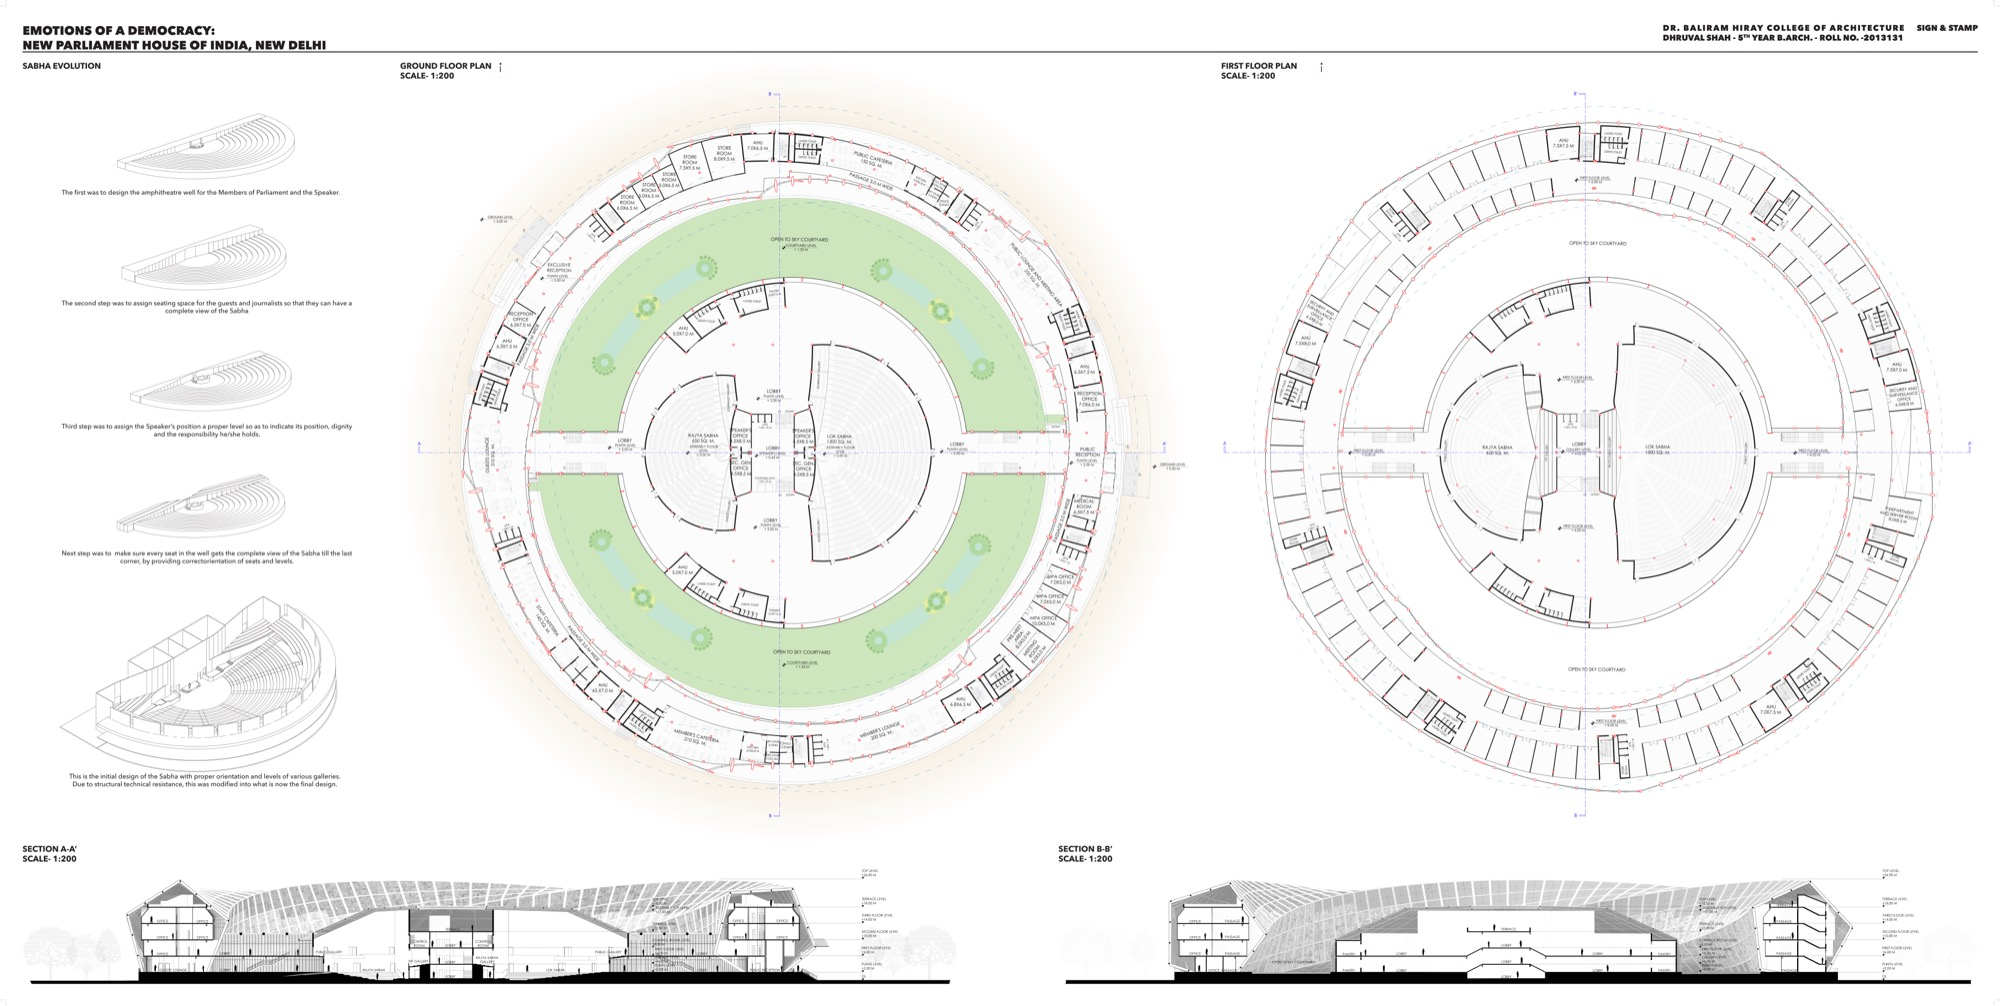 B.Arch Thesis: Emotions of a Democracy: New Parliament House of India, New Delhi Dhruval Shah 11